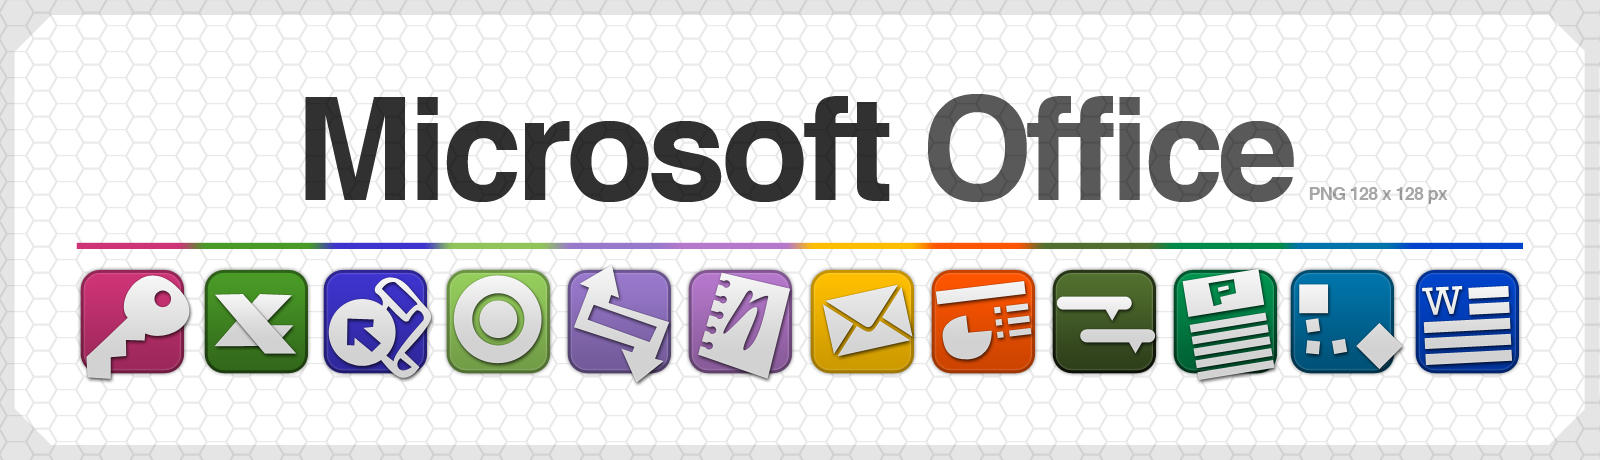 Ms office icons 128x128px png by gorganzola1 on deviantart for Office 2010 clipart